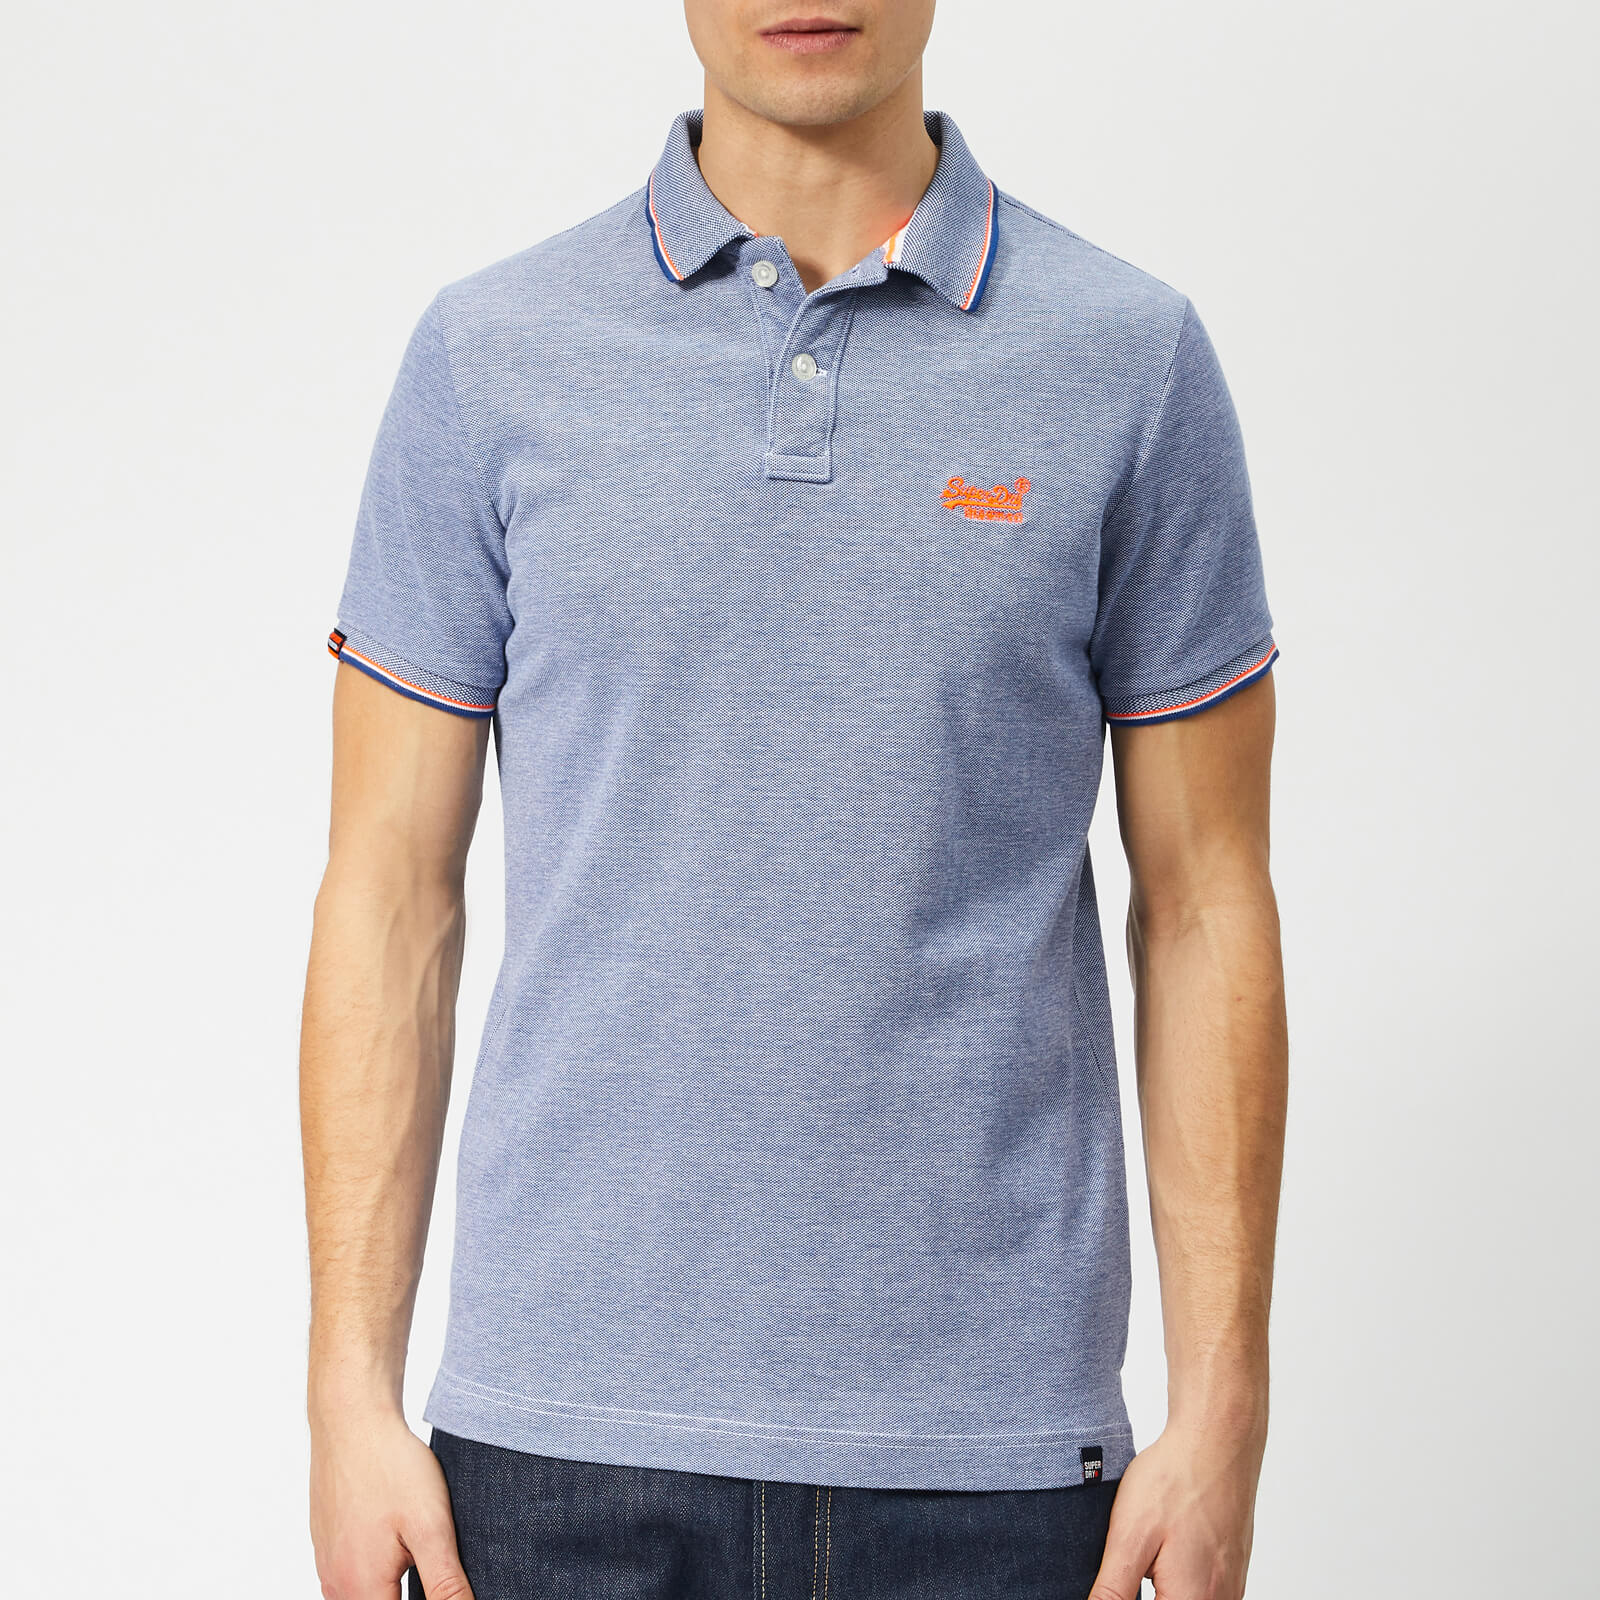 0611056d2a51 Superdry Men's Classic Poolside Polo Shirt - Cobalt/White Clothing ...